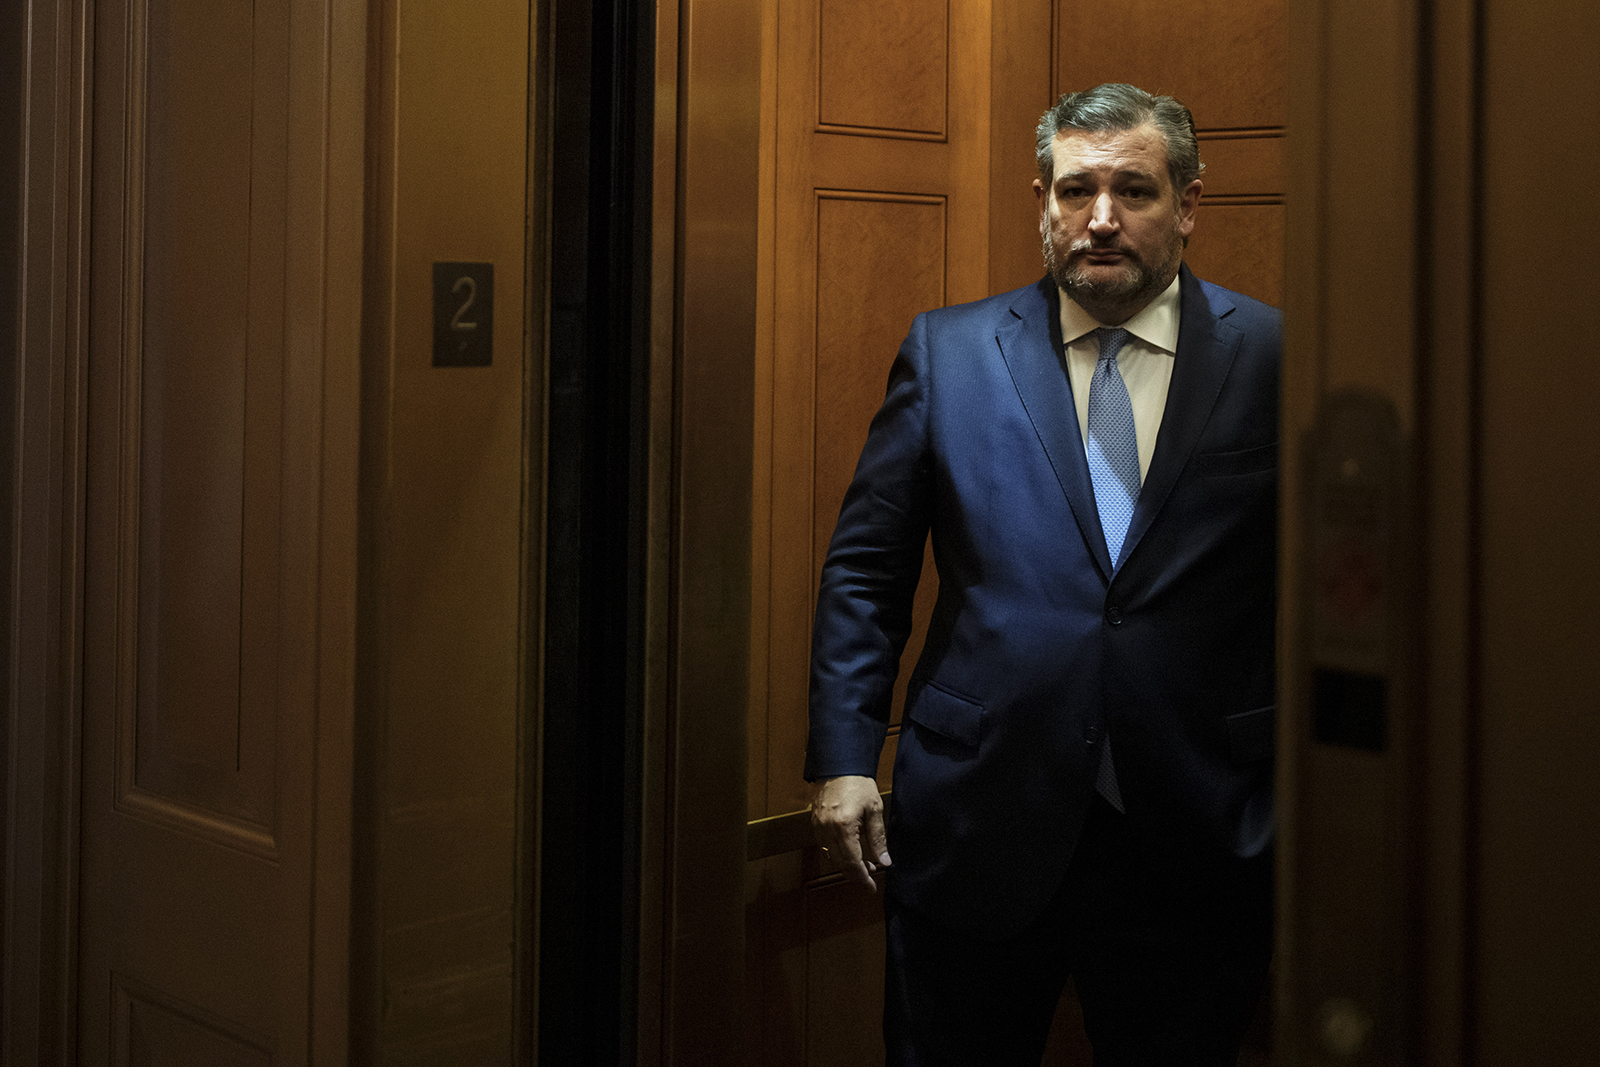 Sen. Ted Cruz of Texas rides an elevator at the US Capitol building in Washington, DC on August 7.